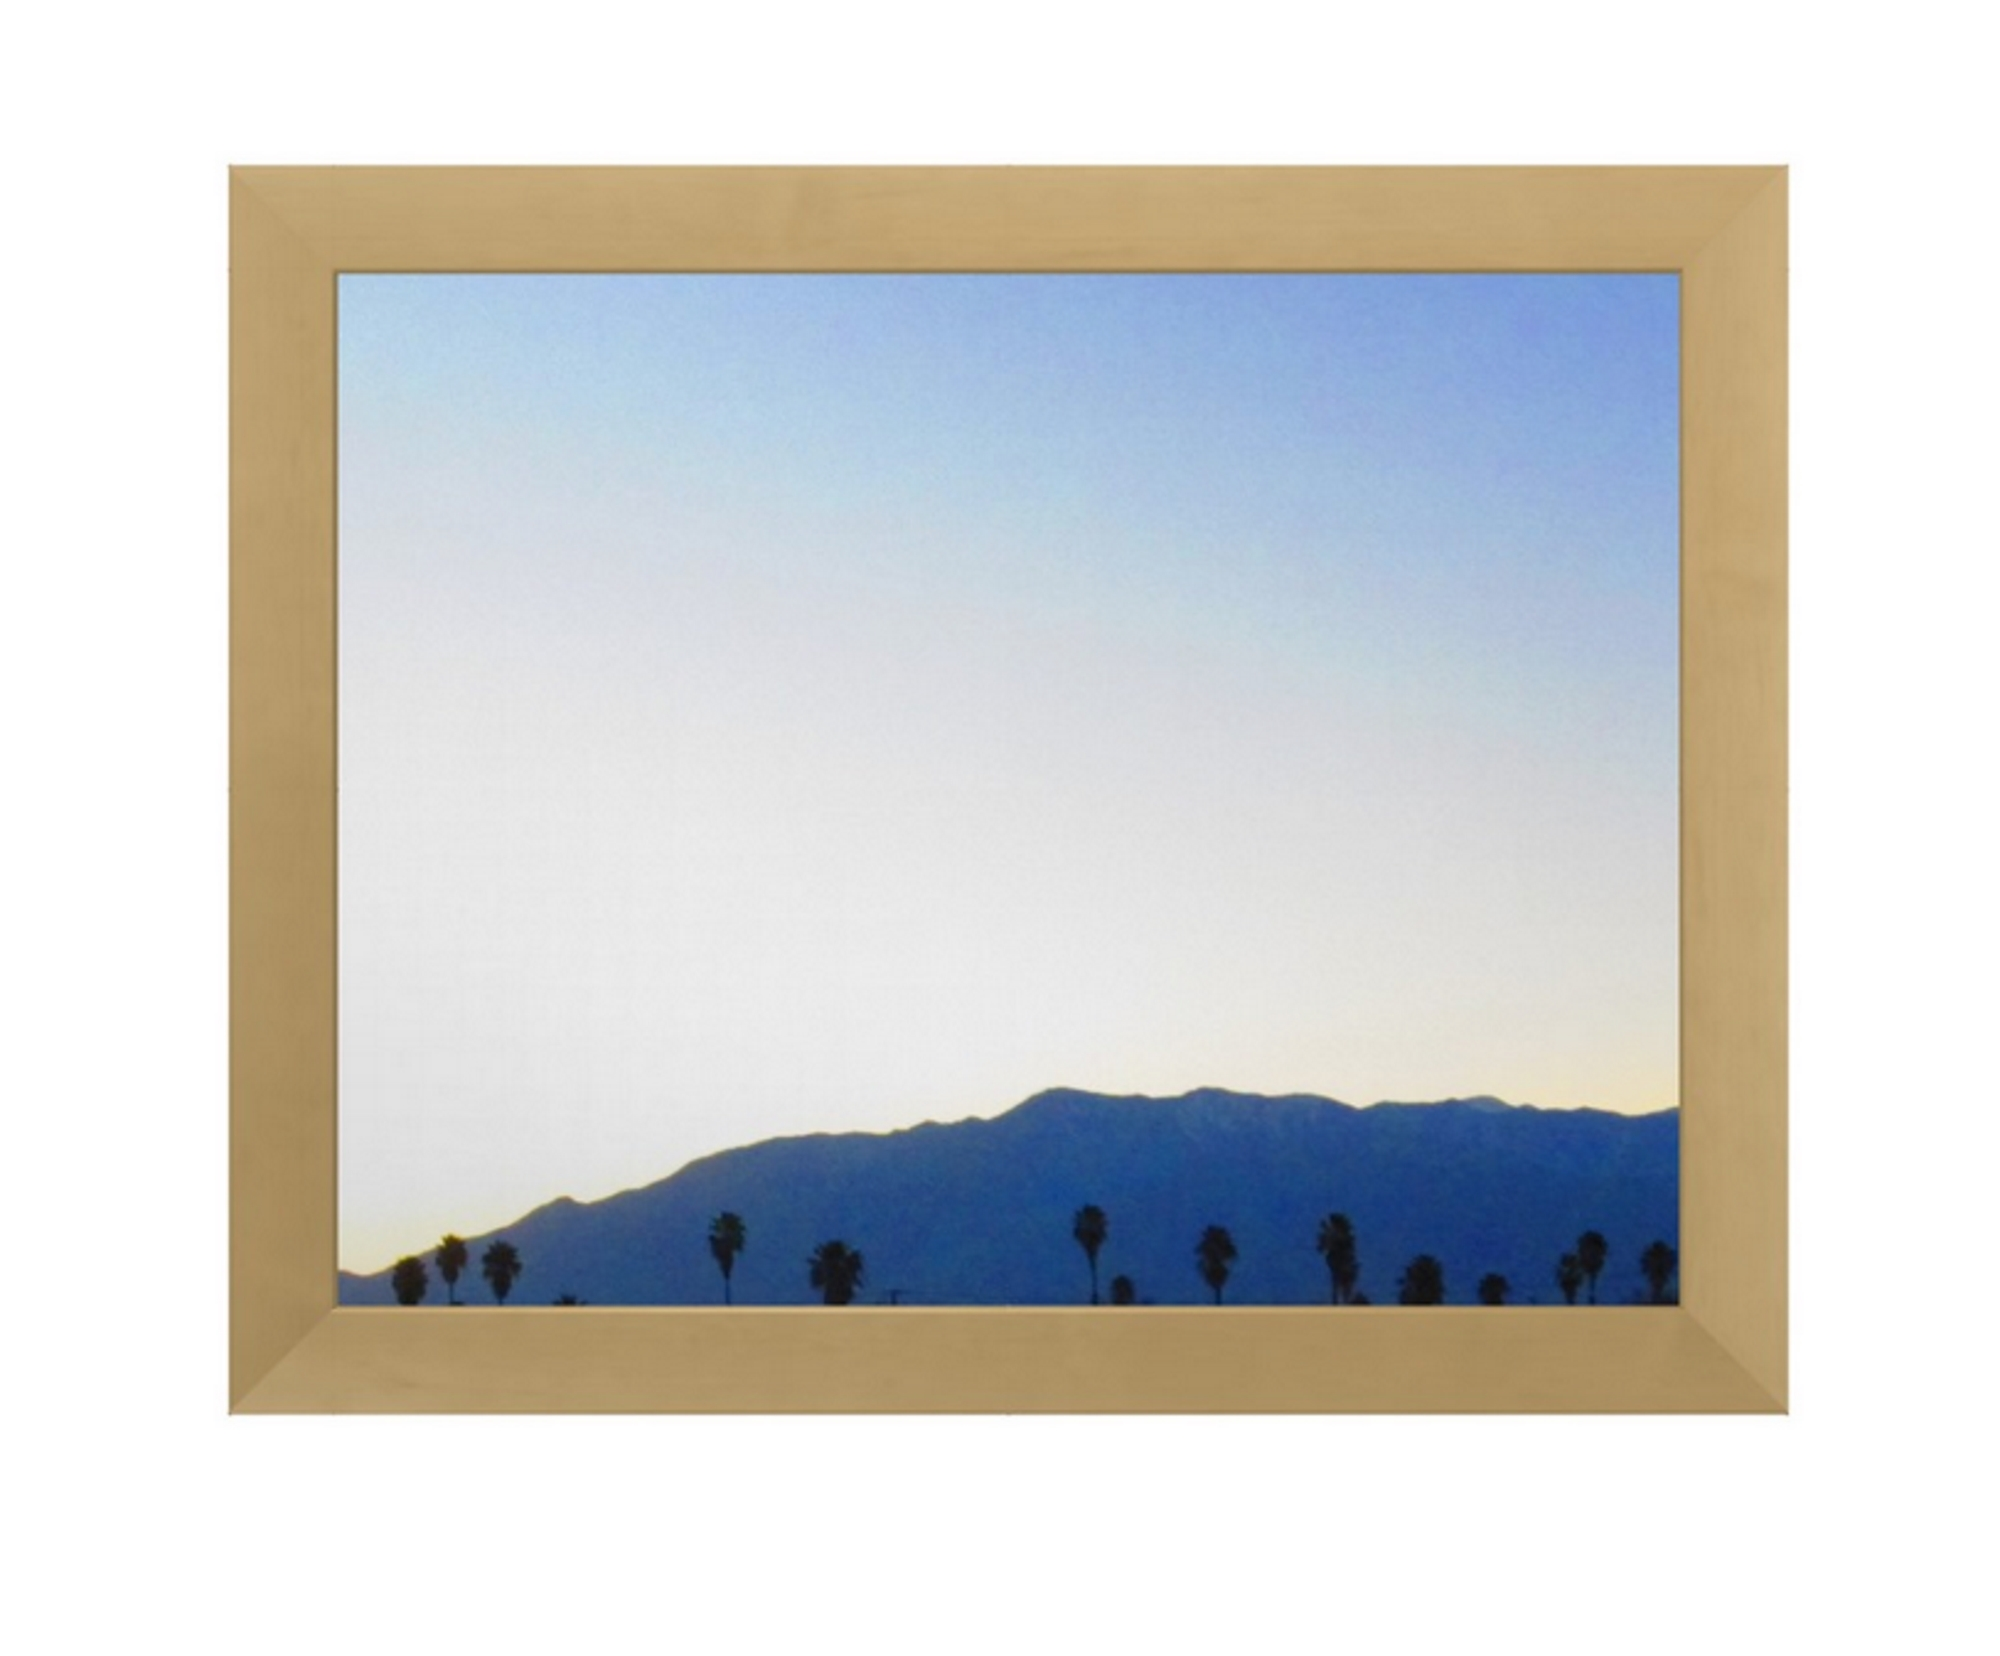 This framed poster features a photograph of the mountains and palm trees that I took this year.